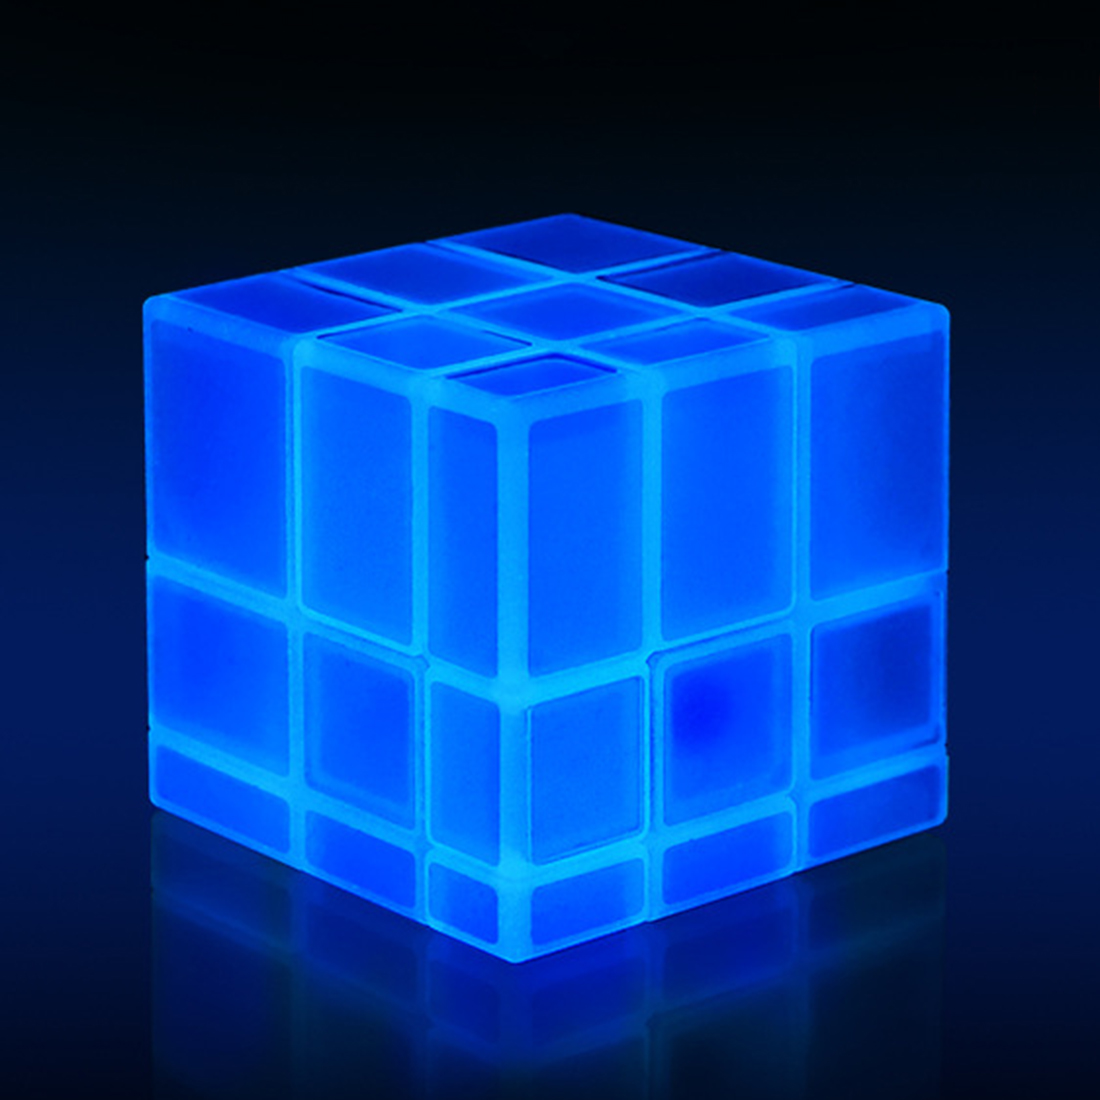 New QiYi 3X3X3 Mirror Blocks Luminous Magic Speed Cube Puzzle Cubo Magico Professional Learning&Educational Classic Toys Cube-in Magic Cubes from Toys & Hobbies